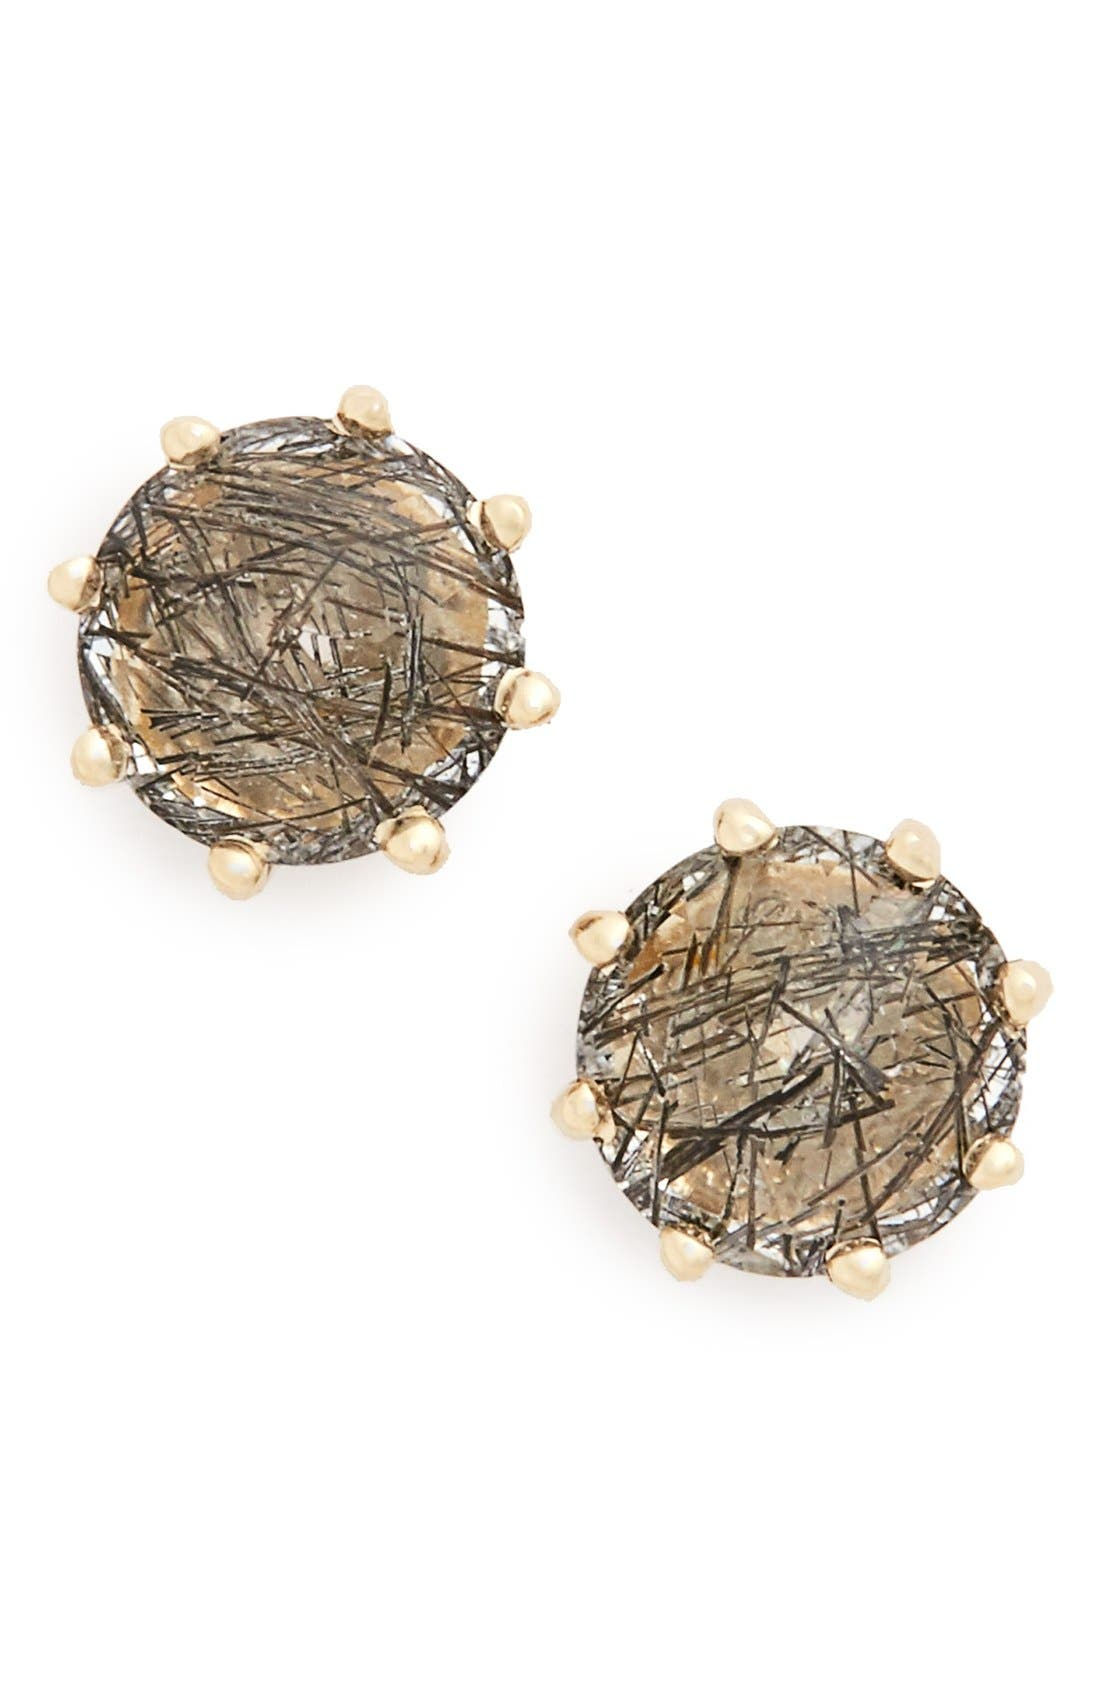 'Eleanor' Black Rutilated Quartz Stud Earrings,                             Main thumbnail 1, color,                             715